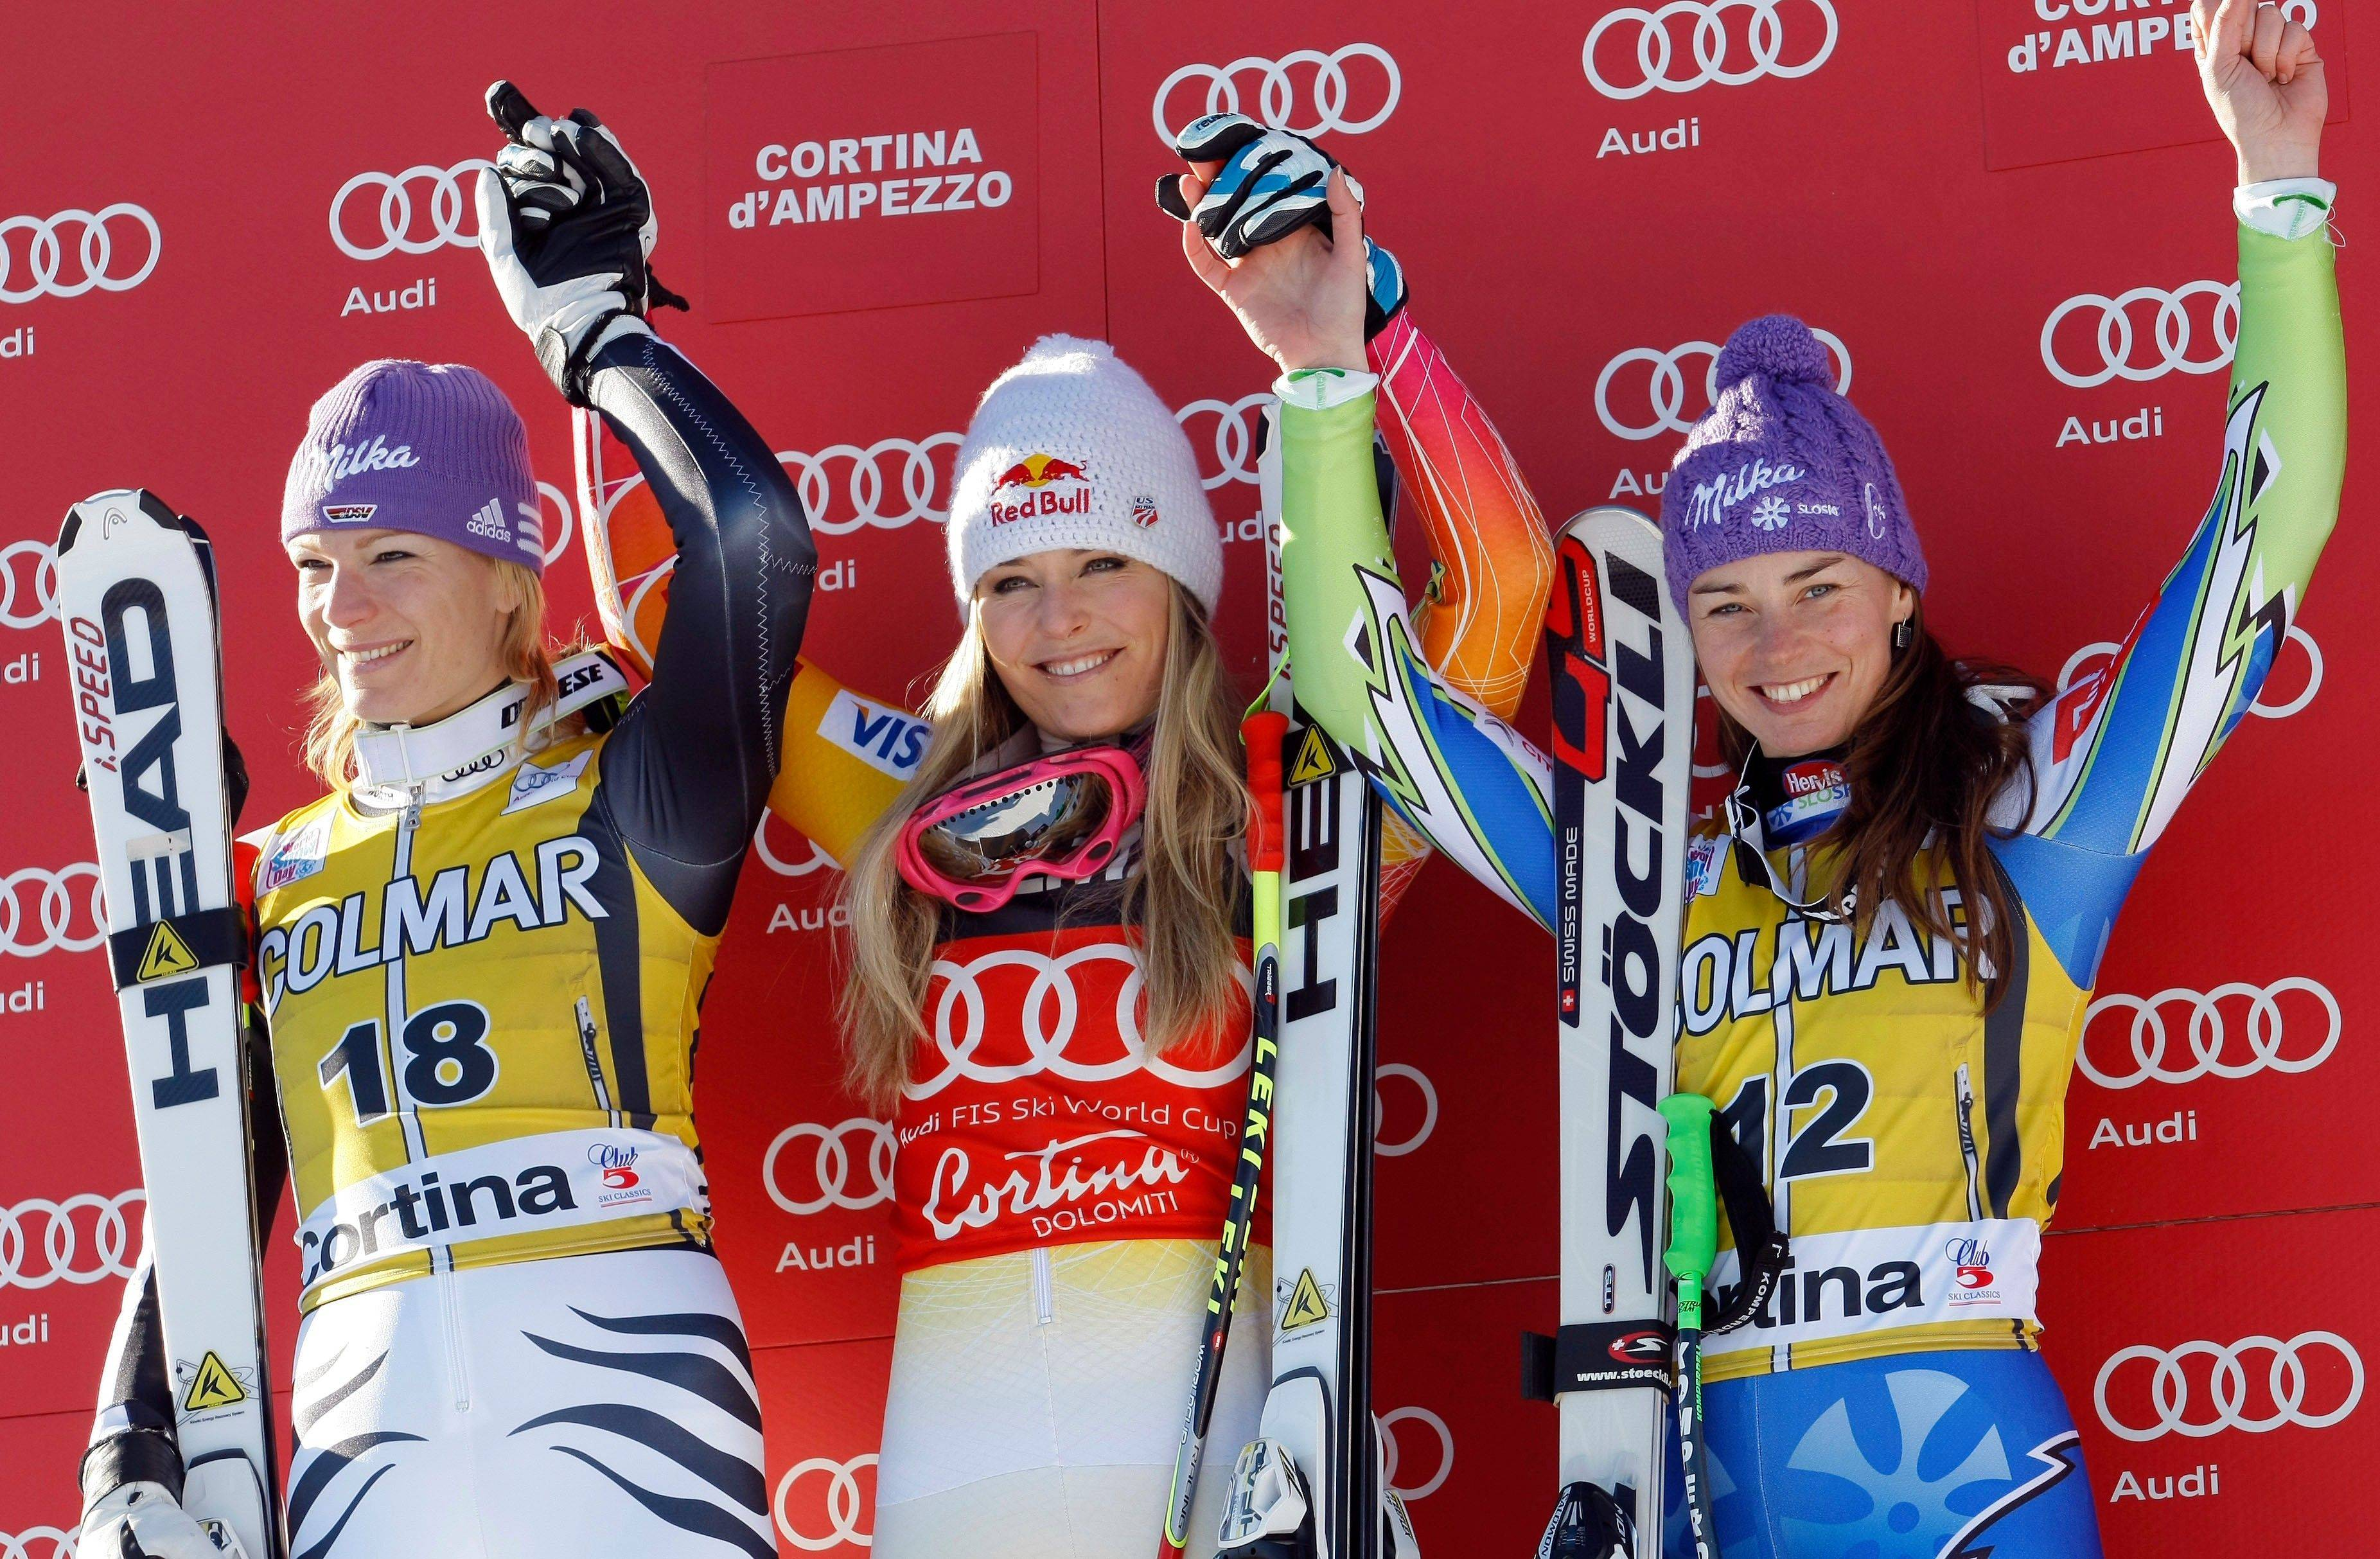 Super-G champion Lindsey Vonn of the United States, center, celebrates on the podium Sunday with second-place winner Maria Hoefl-Riesch of Germany, left, and third-place winner Tina Maze of Slovenia in Cortina D'Ampezzo, Italy.